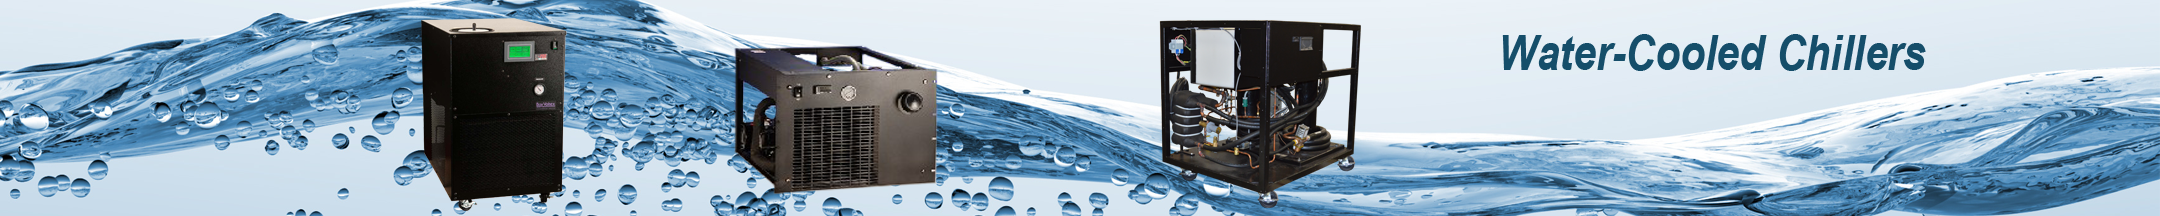 Water Cooled Chillers from BV Thermal Systems